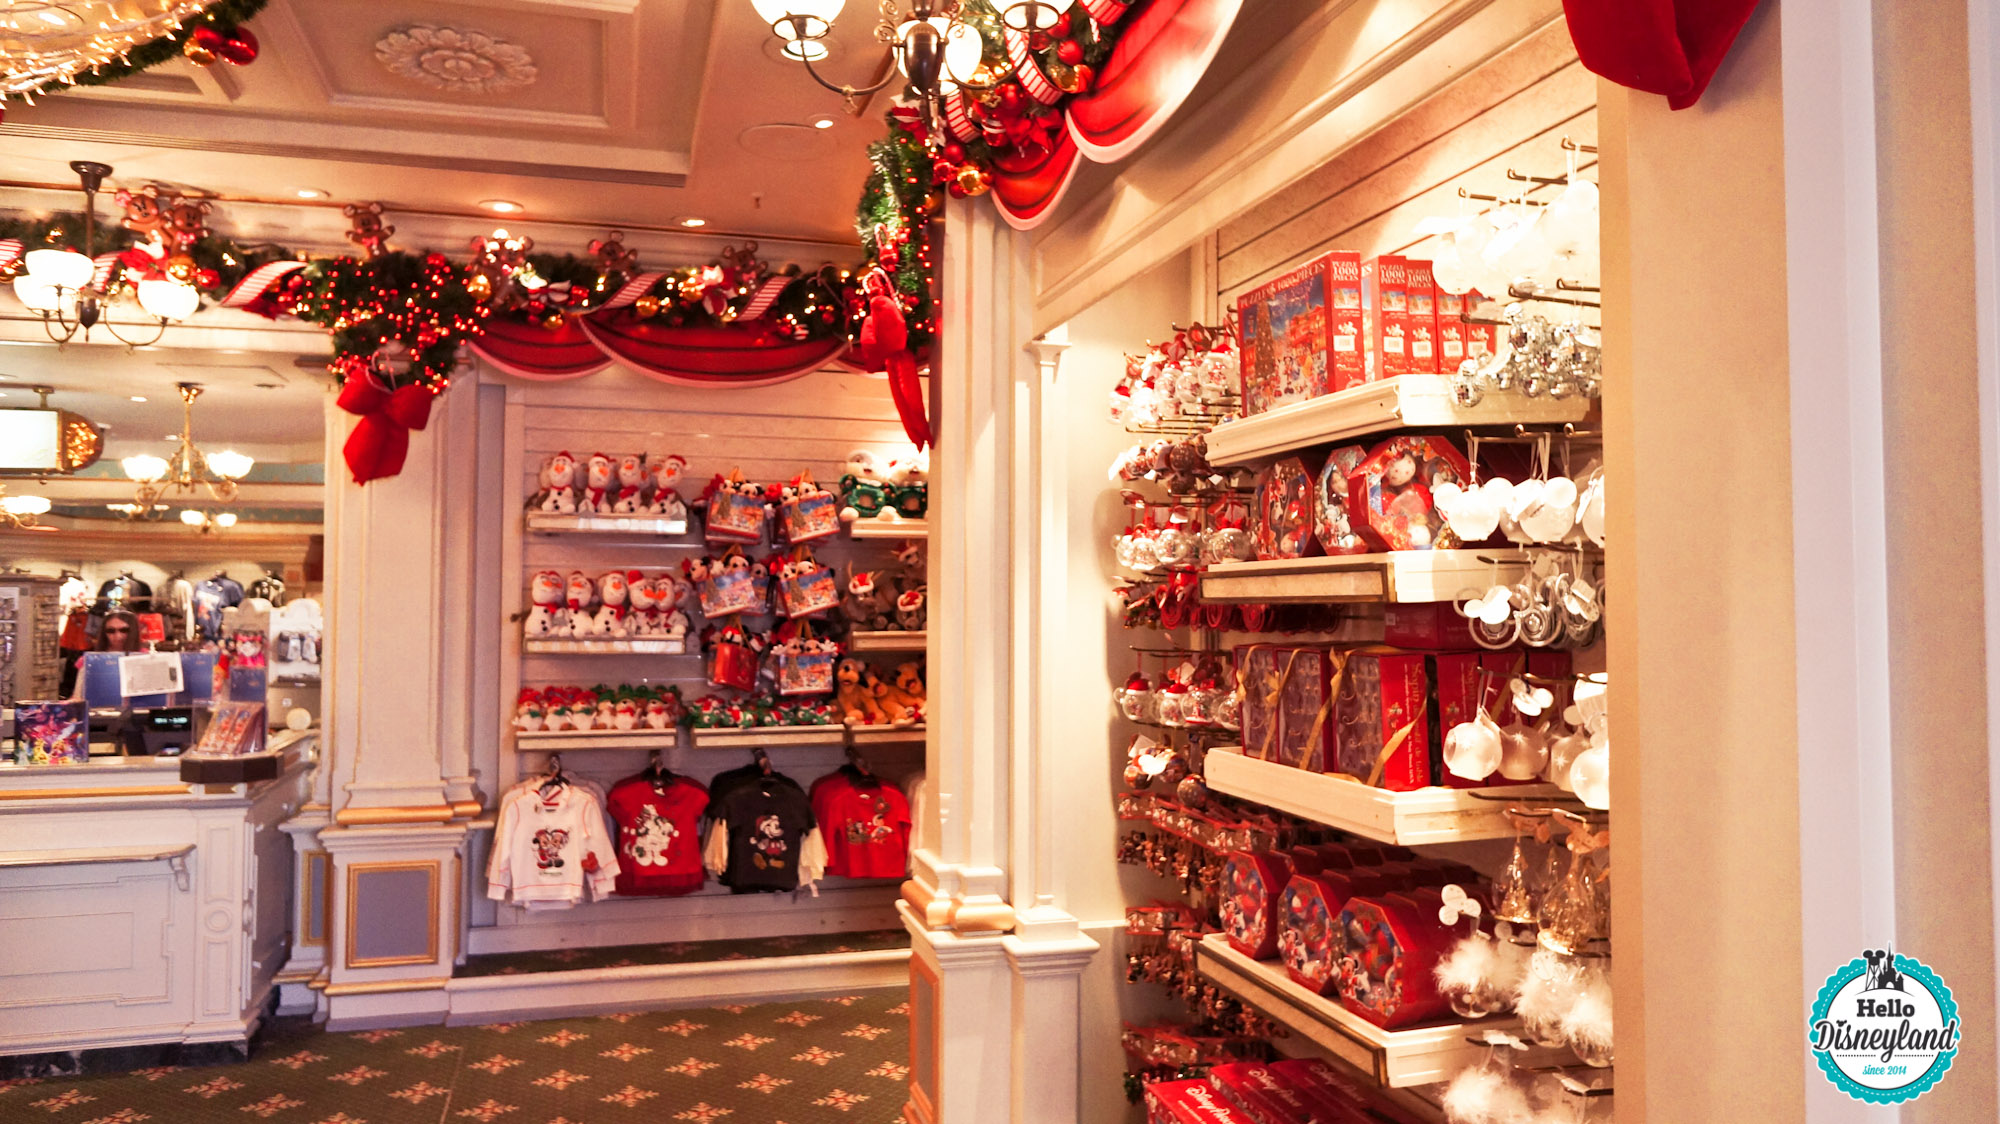 Hello disneyland le blog n 1 sur disneyland paris les - Decoration interieur de noel ...